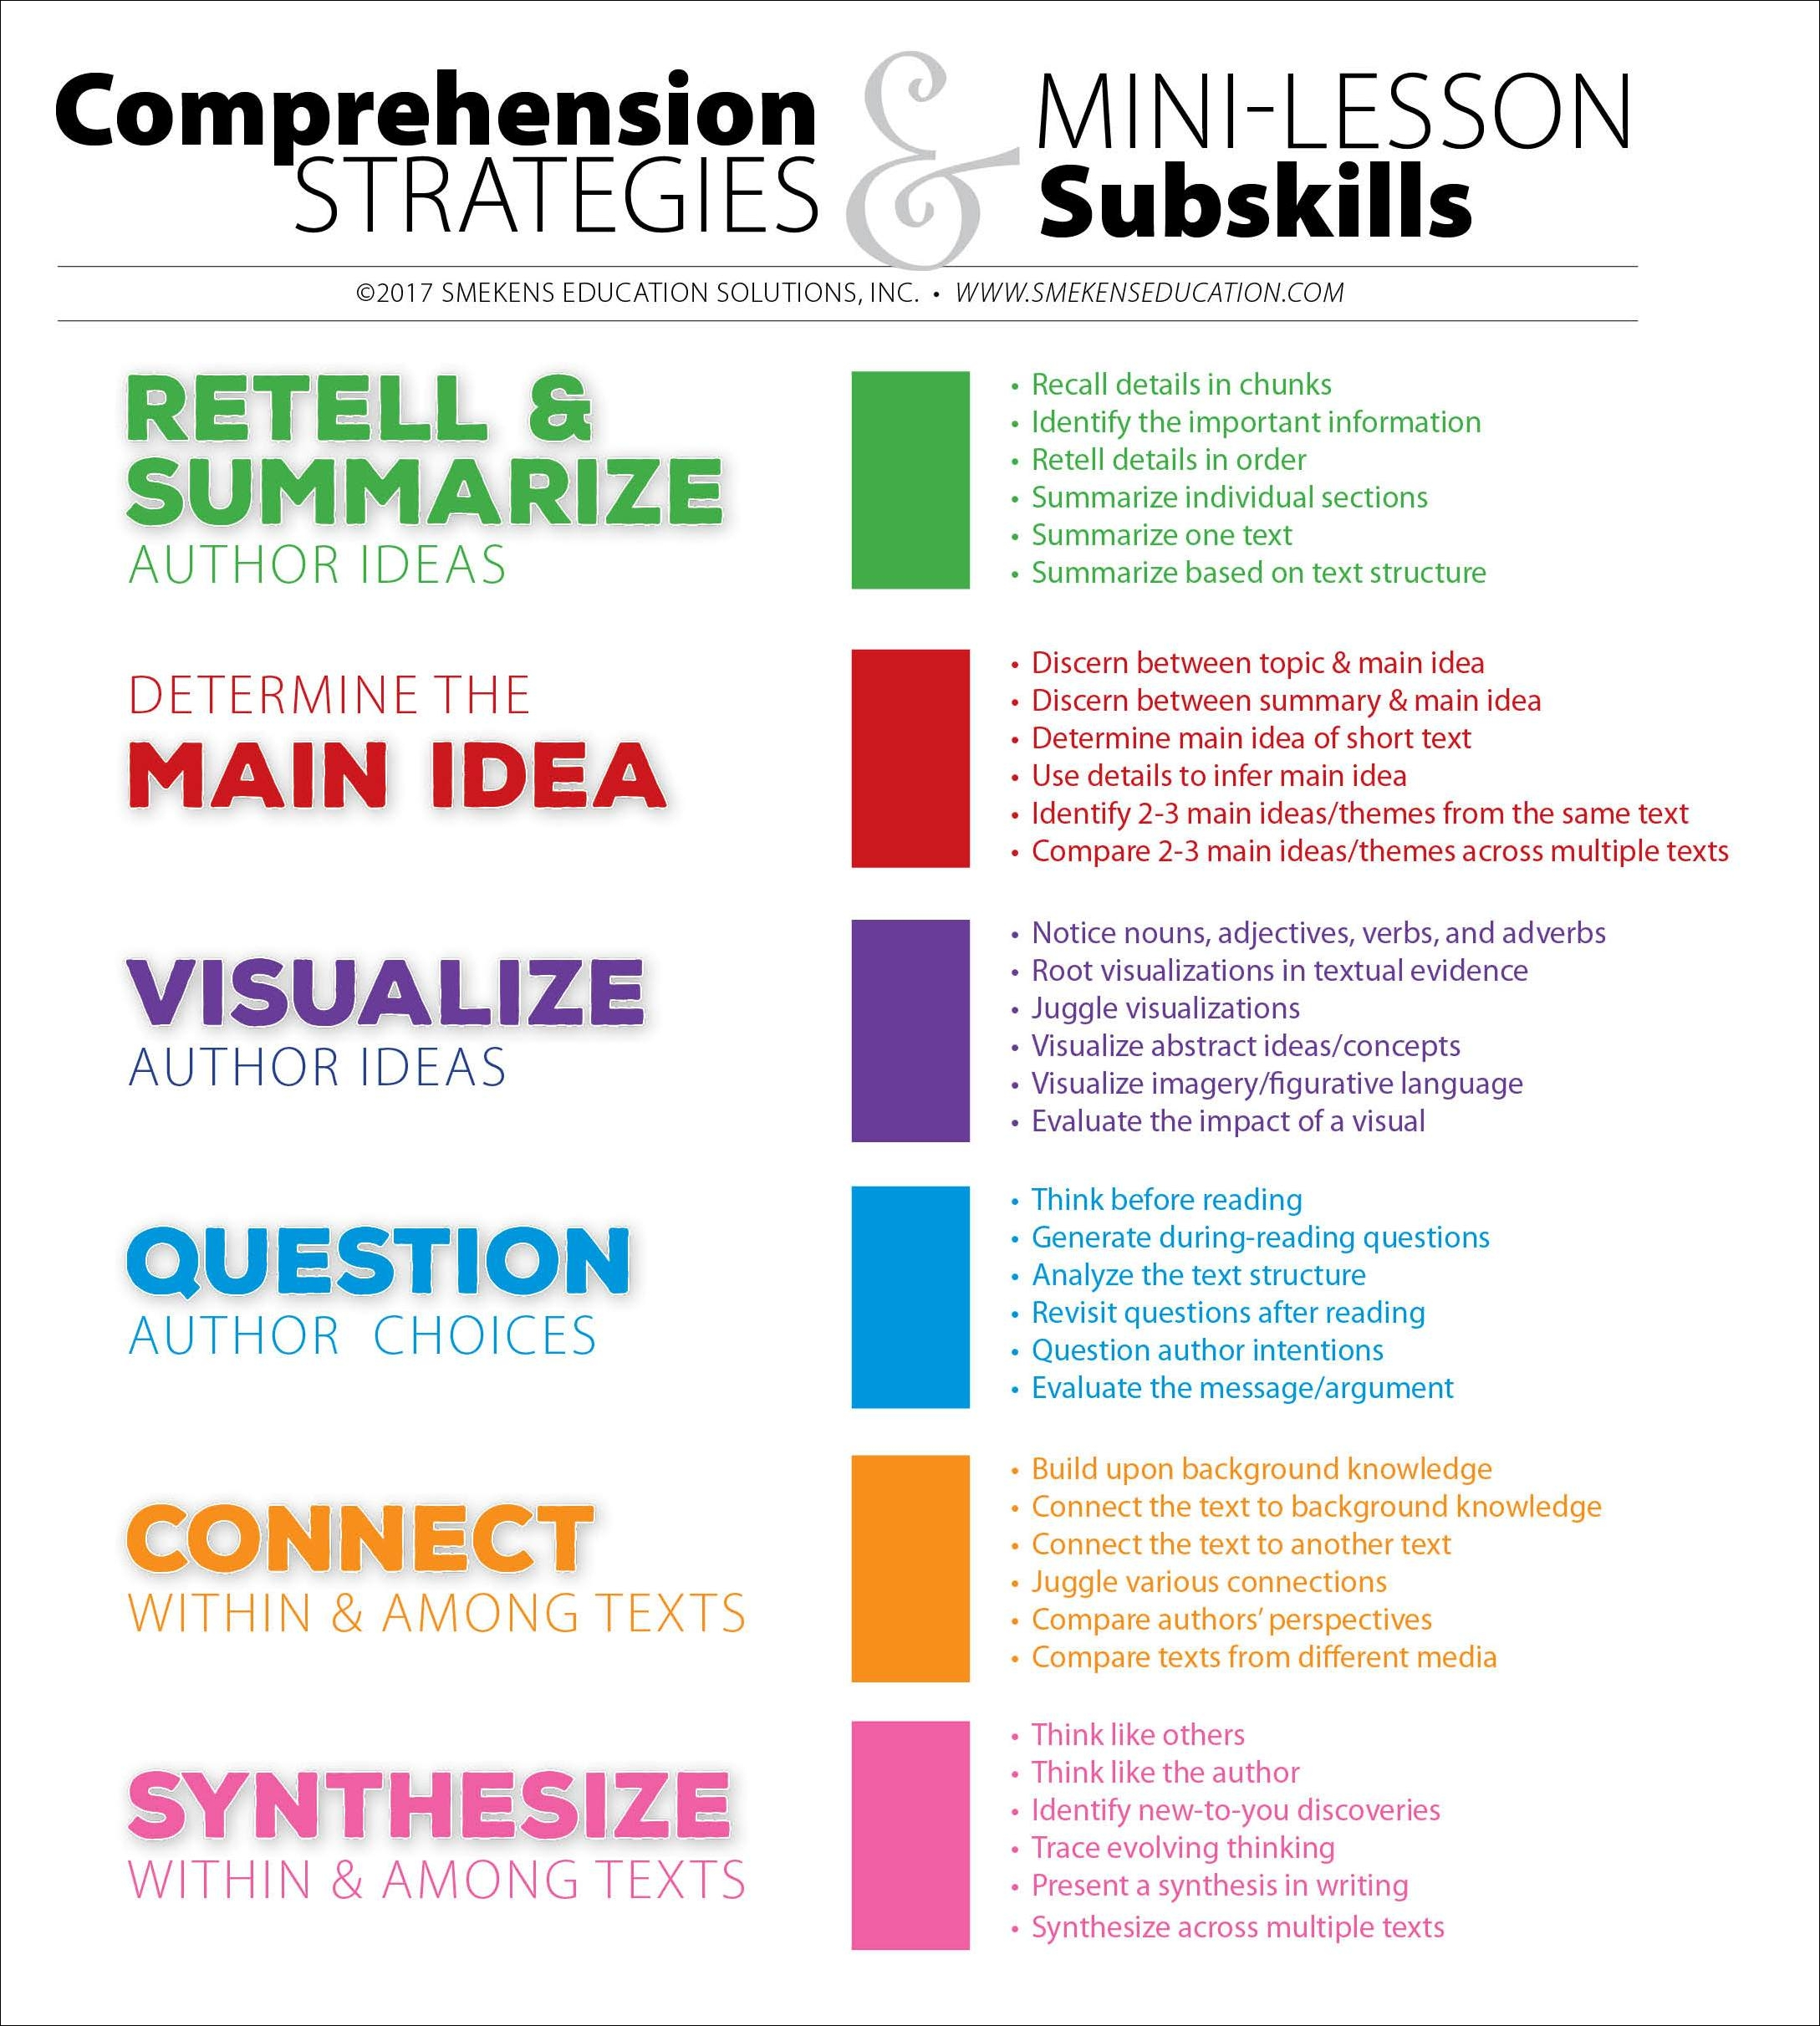 Comprehension Strategies & Mini-Lesson Subskills